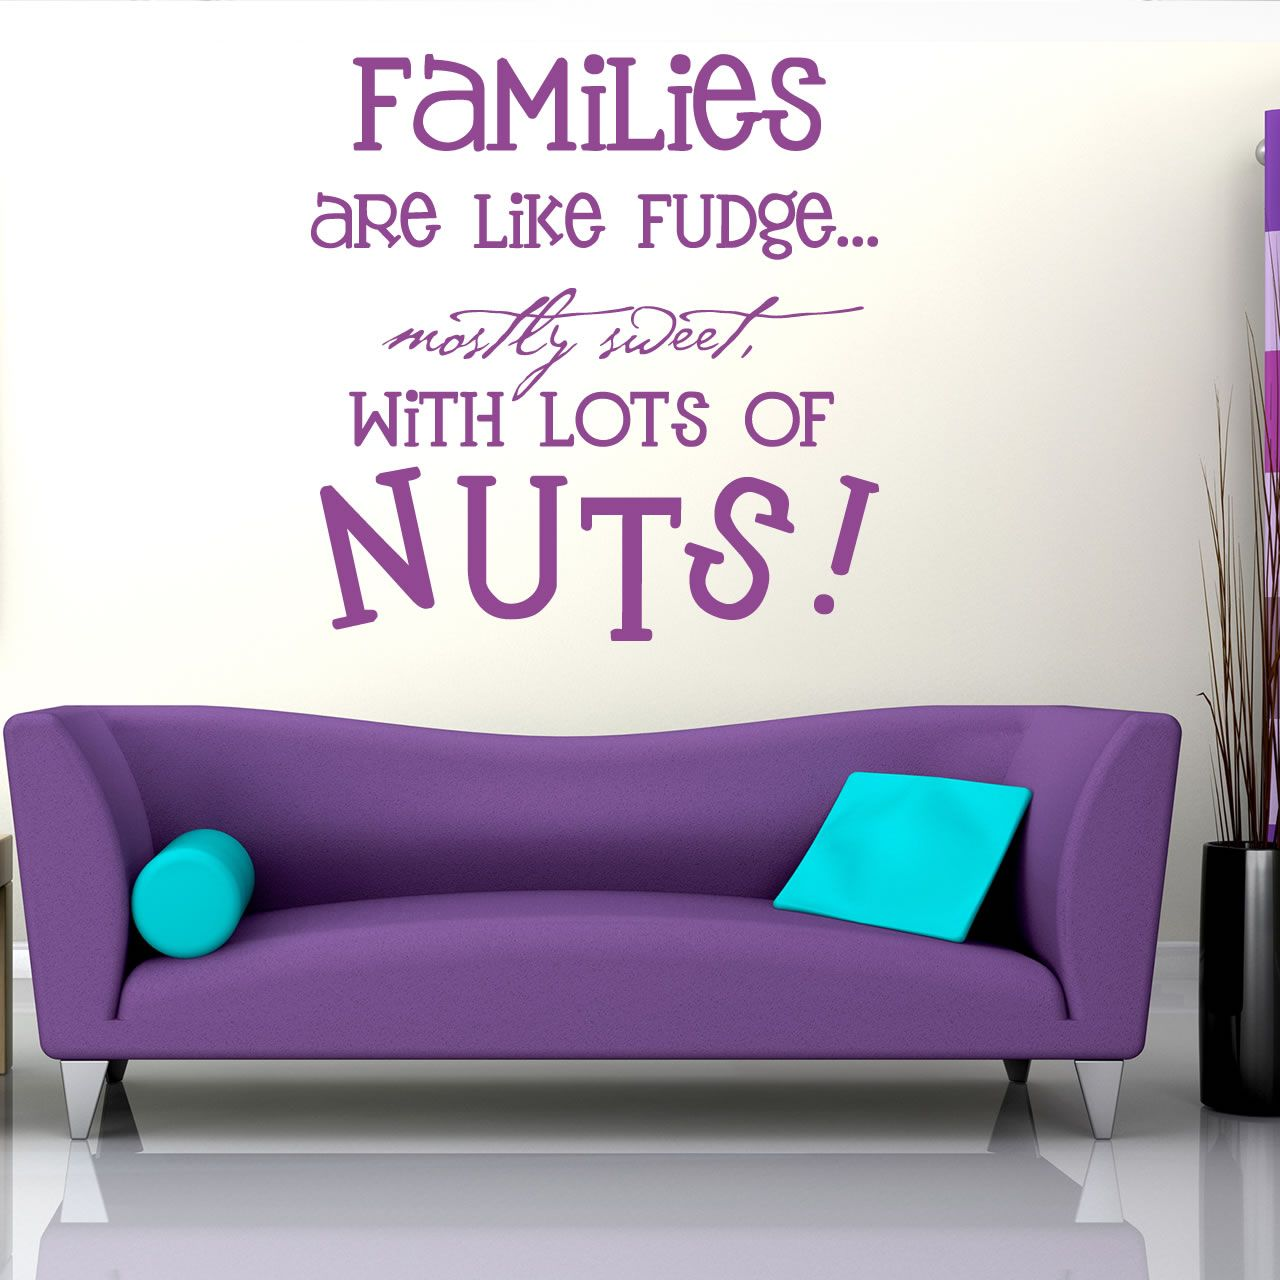 Families are like fudge....mostly sweet with LOTS of Nuts!